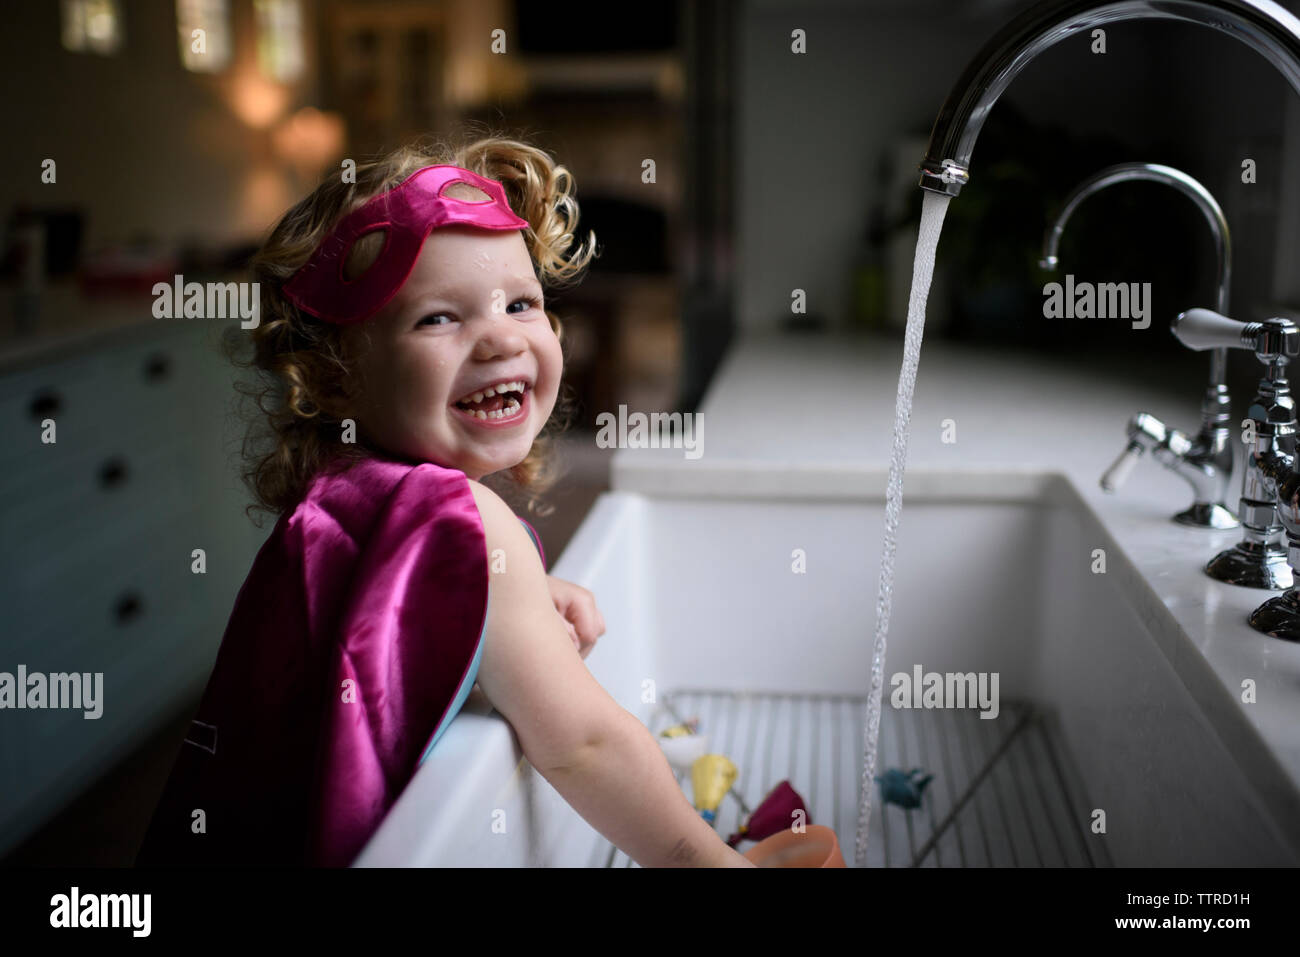 Portrait of smiling girl wearing superhero costume washing hands in kitchen sink at home Stock Photo